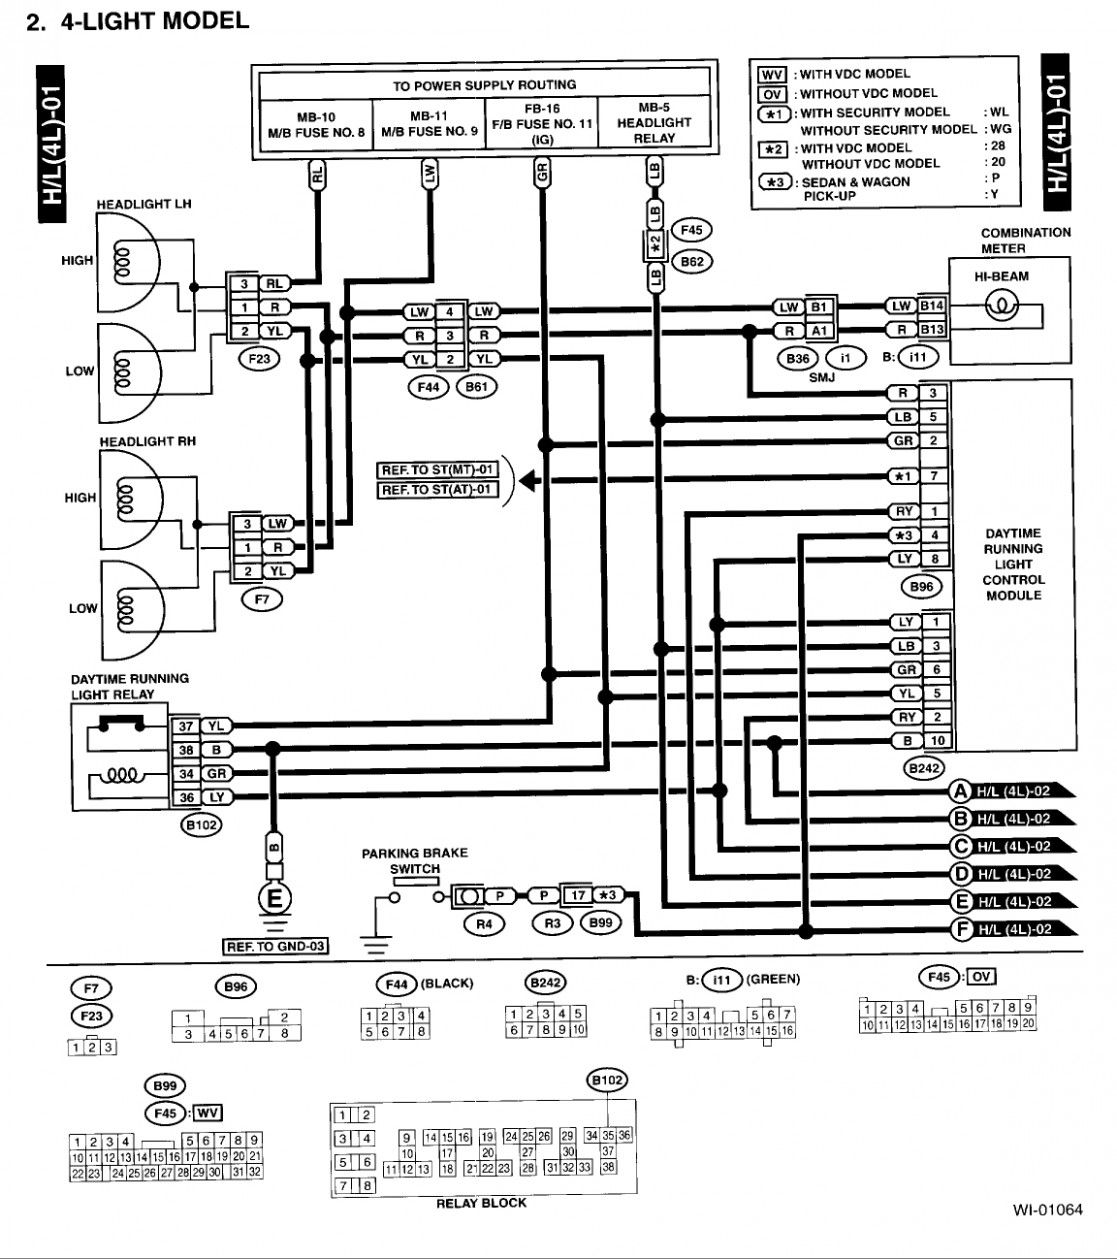 Subaru Impreza Engine Wiring Diagram Di